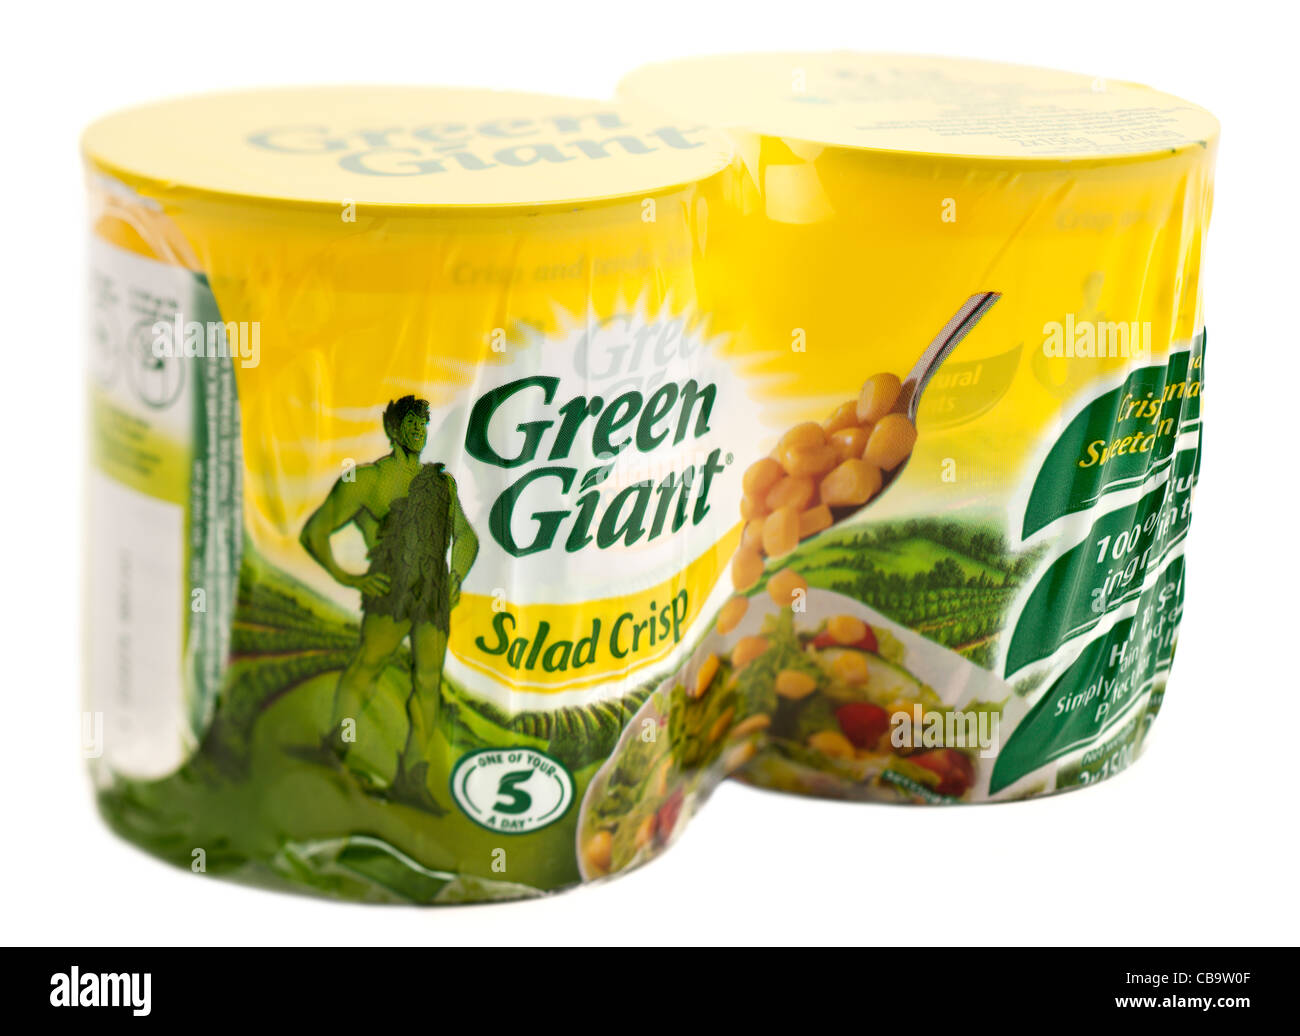 Twin cellophane pack of two tins of Jolly Green Giant salad crisp sweetcorn - Stock Image